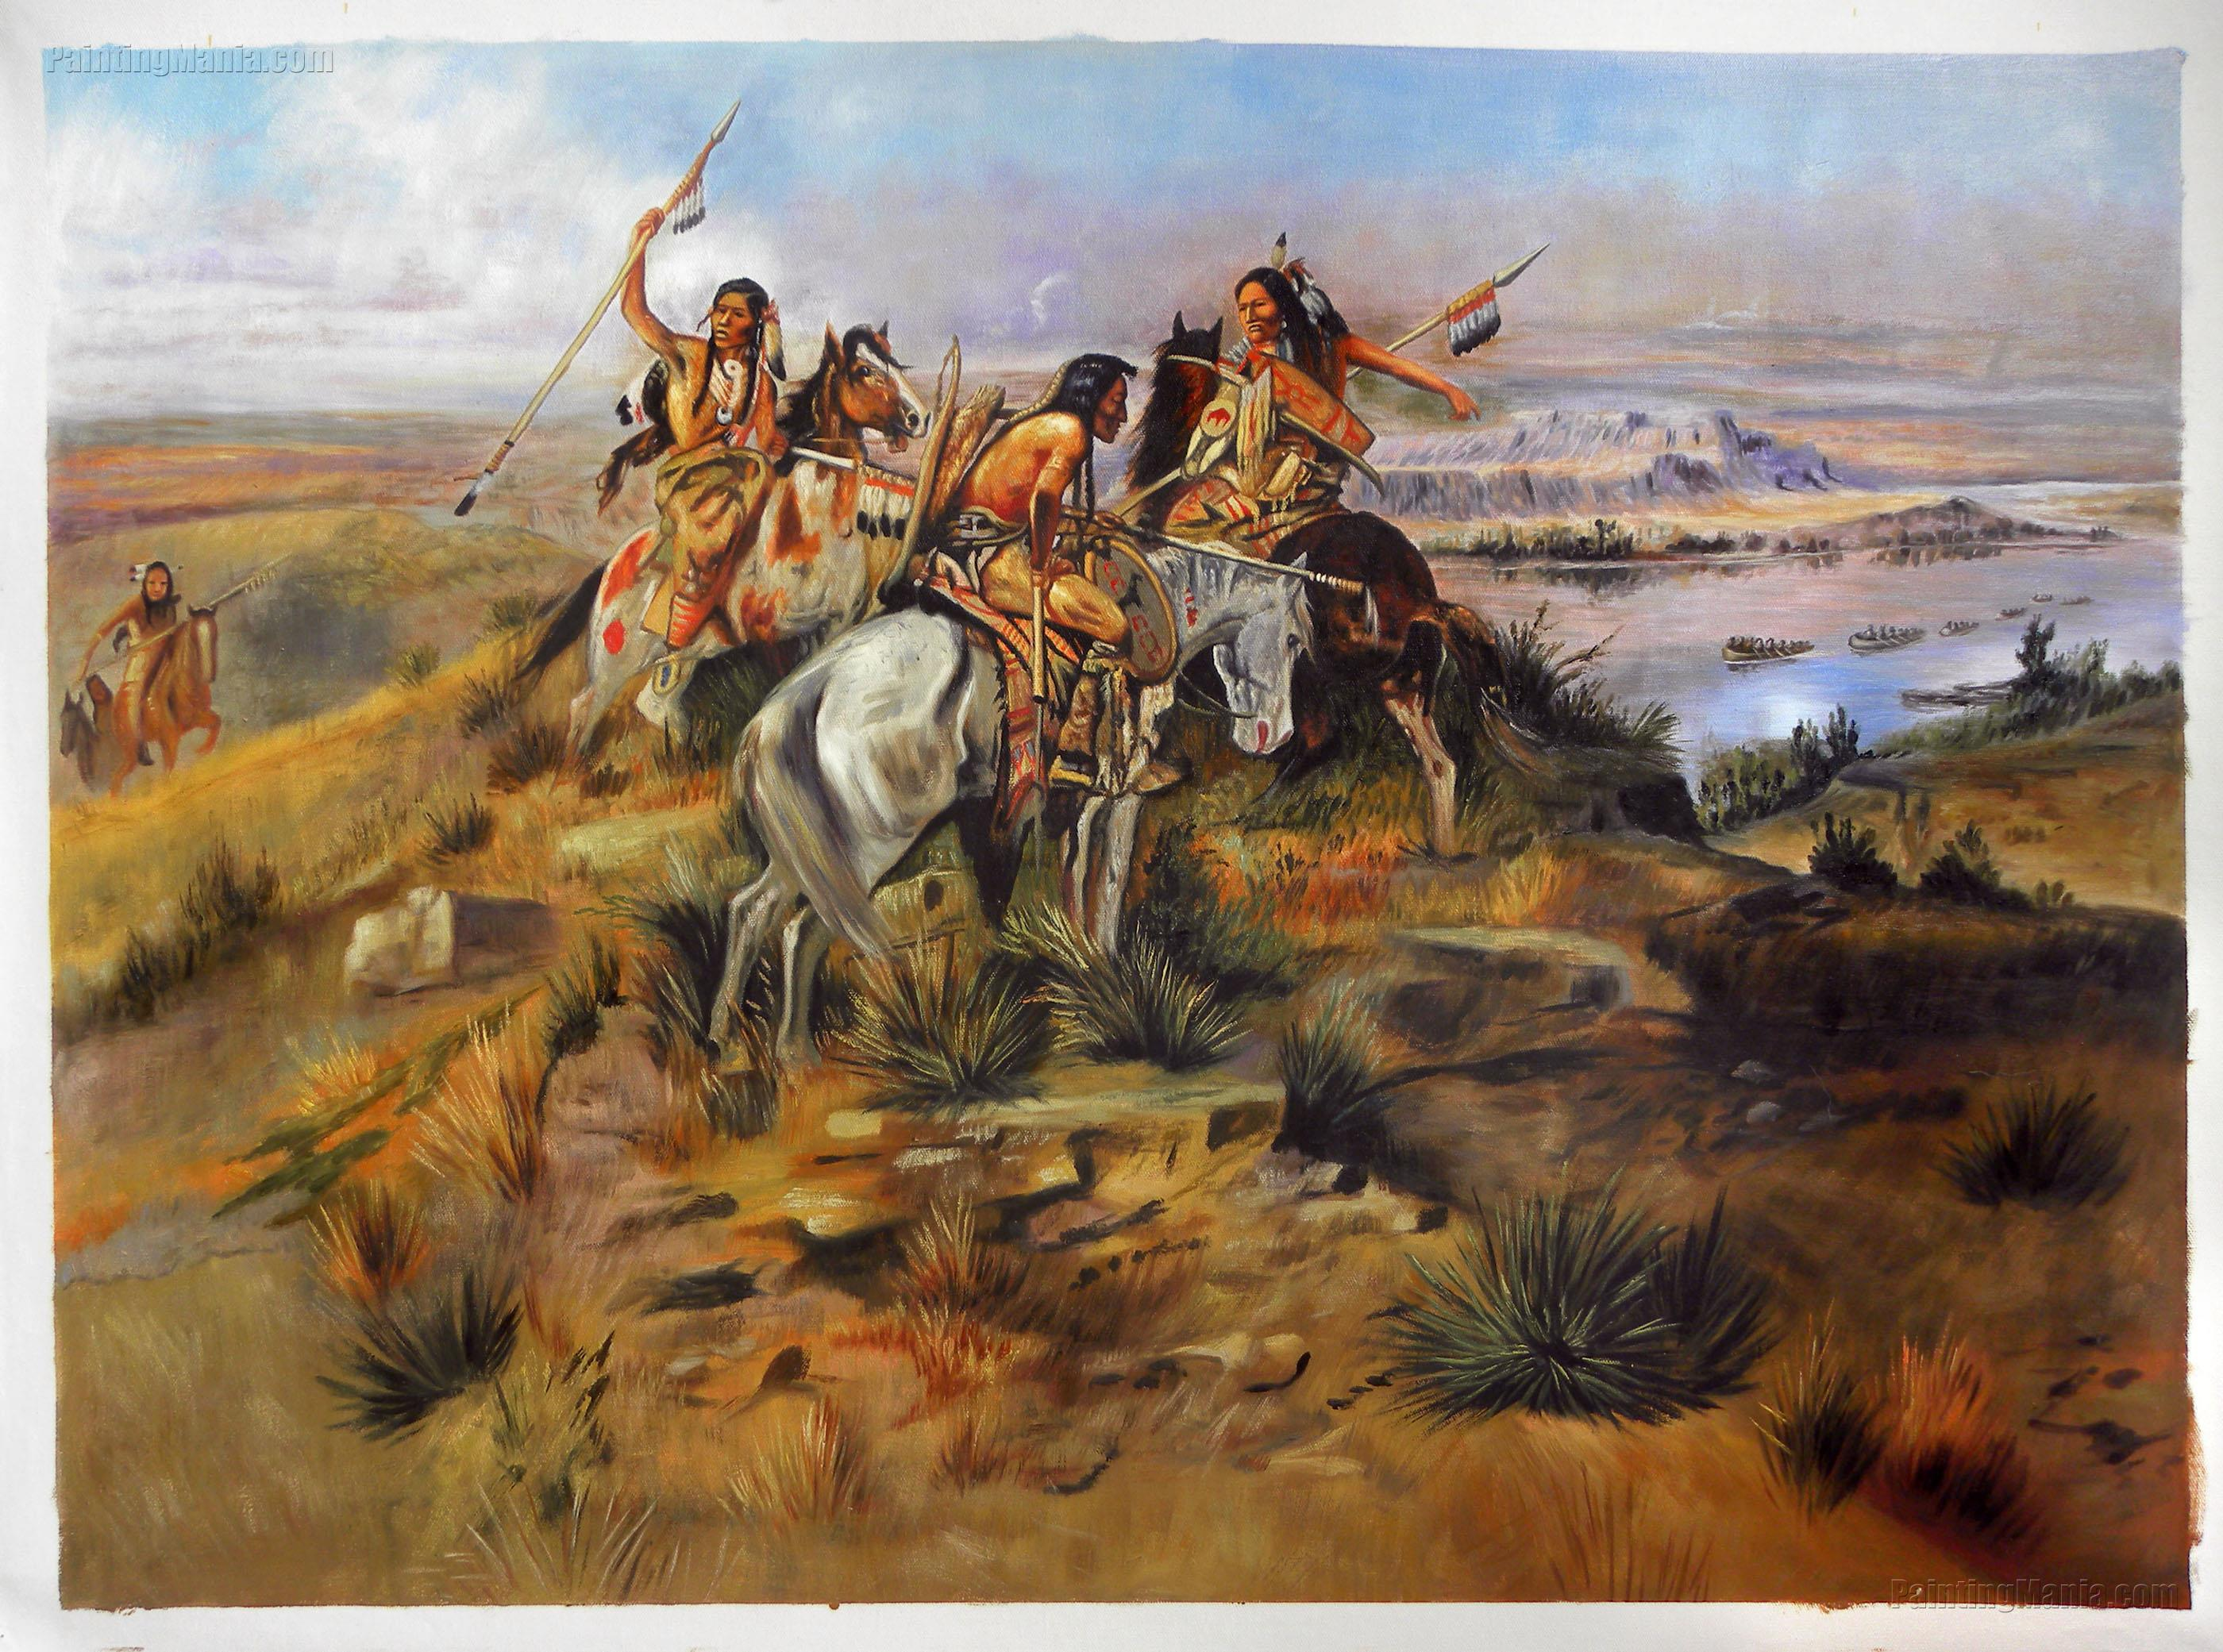 Indians Discovering Lewis and Clark